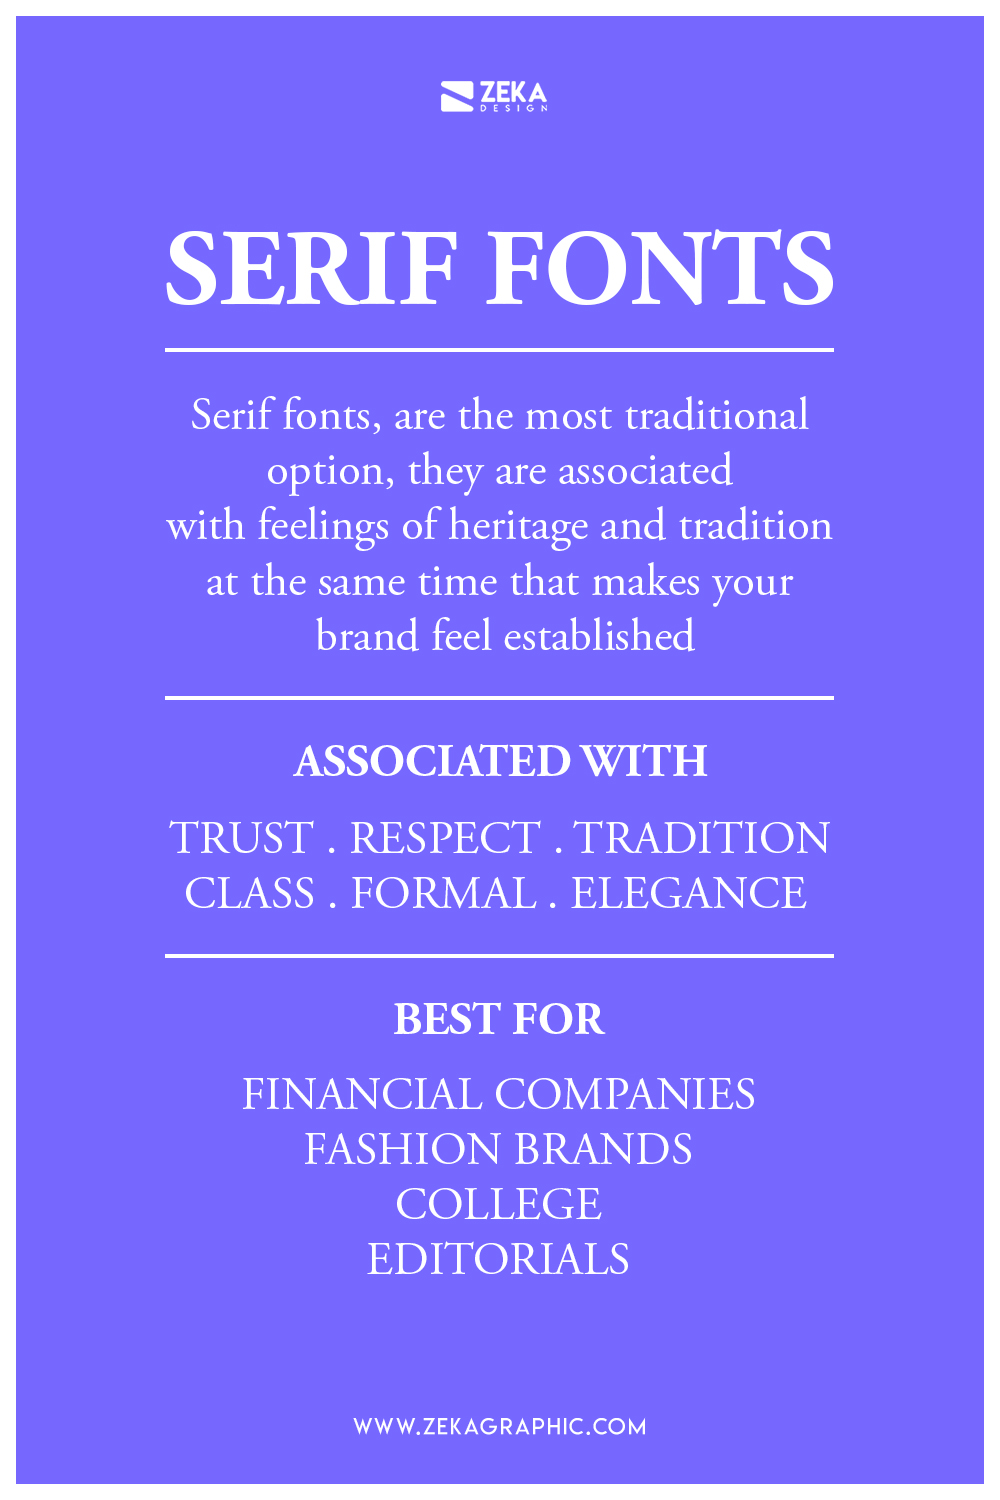 Serif Font Meaning and How To Use Them